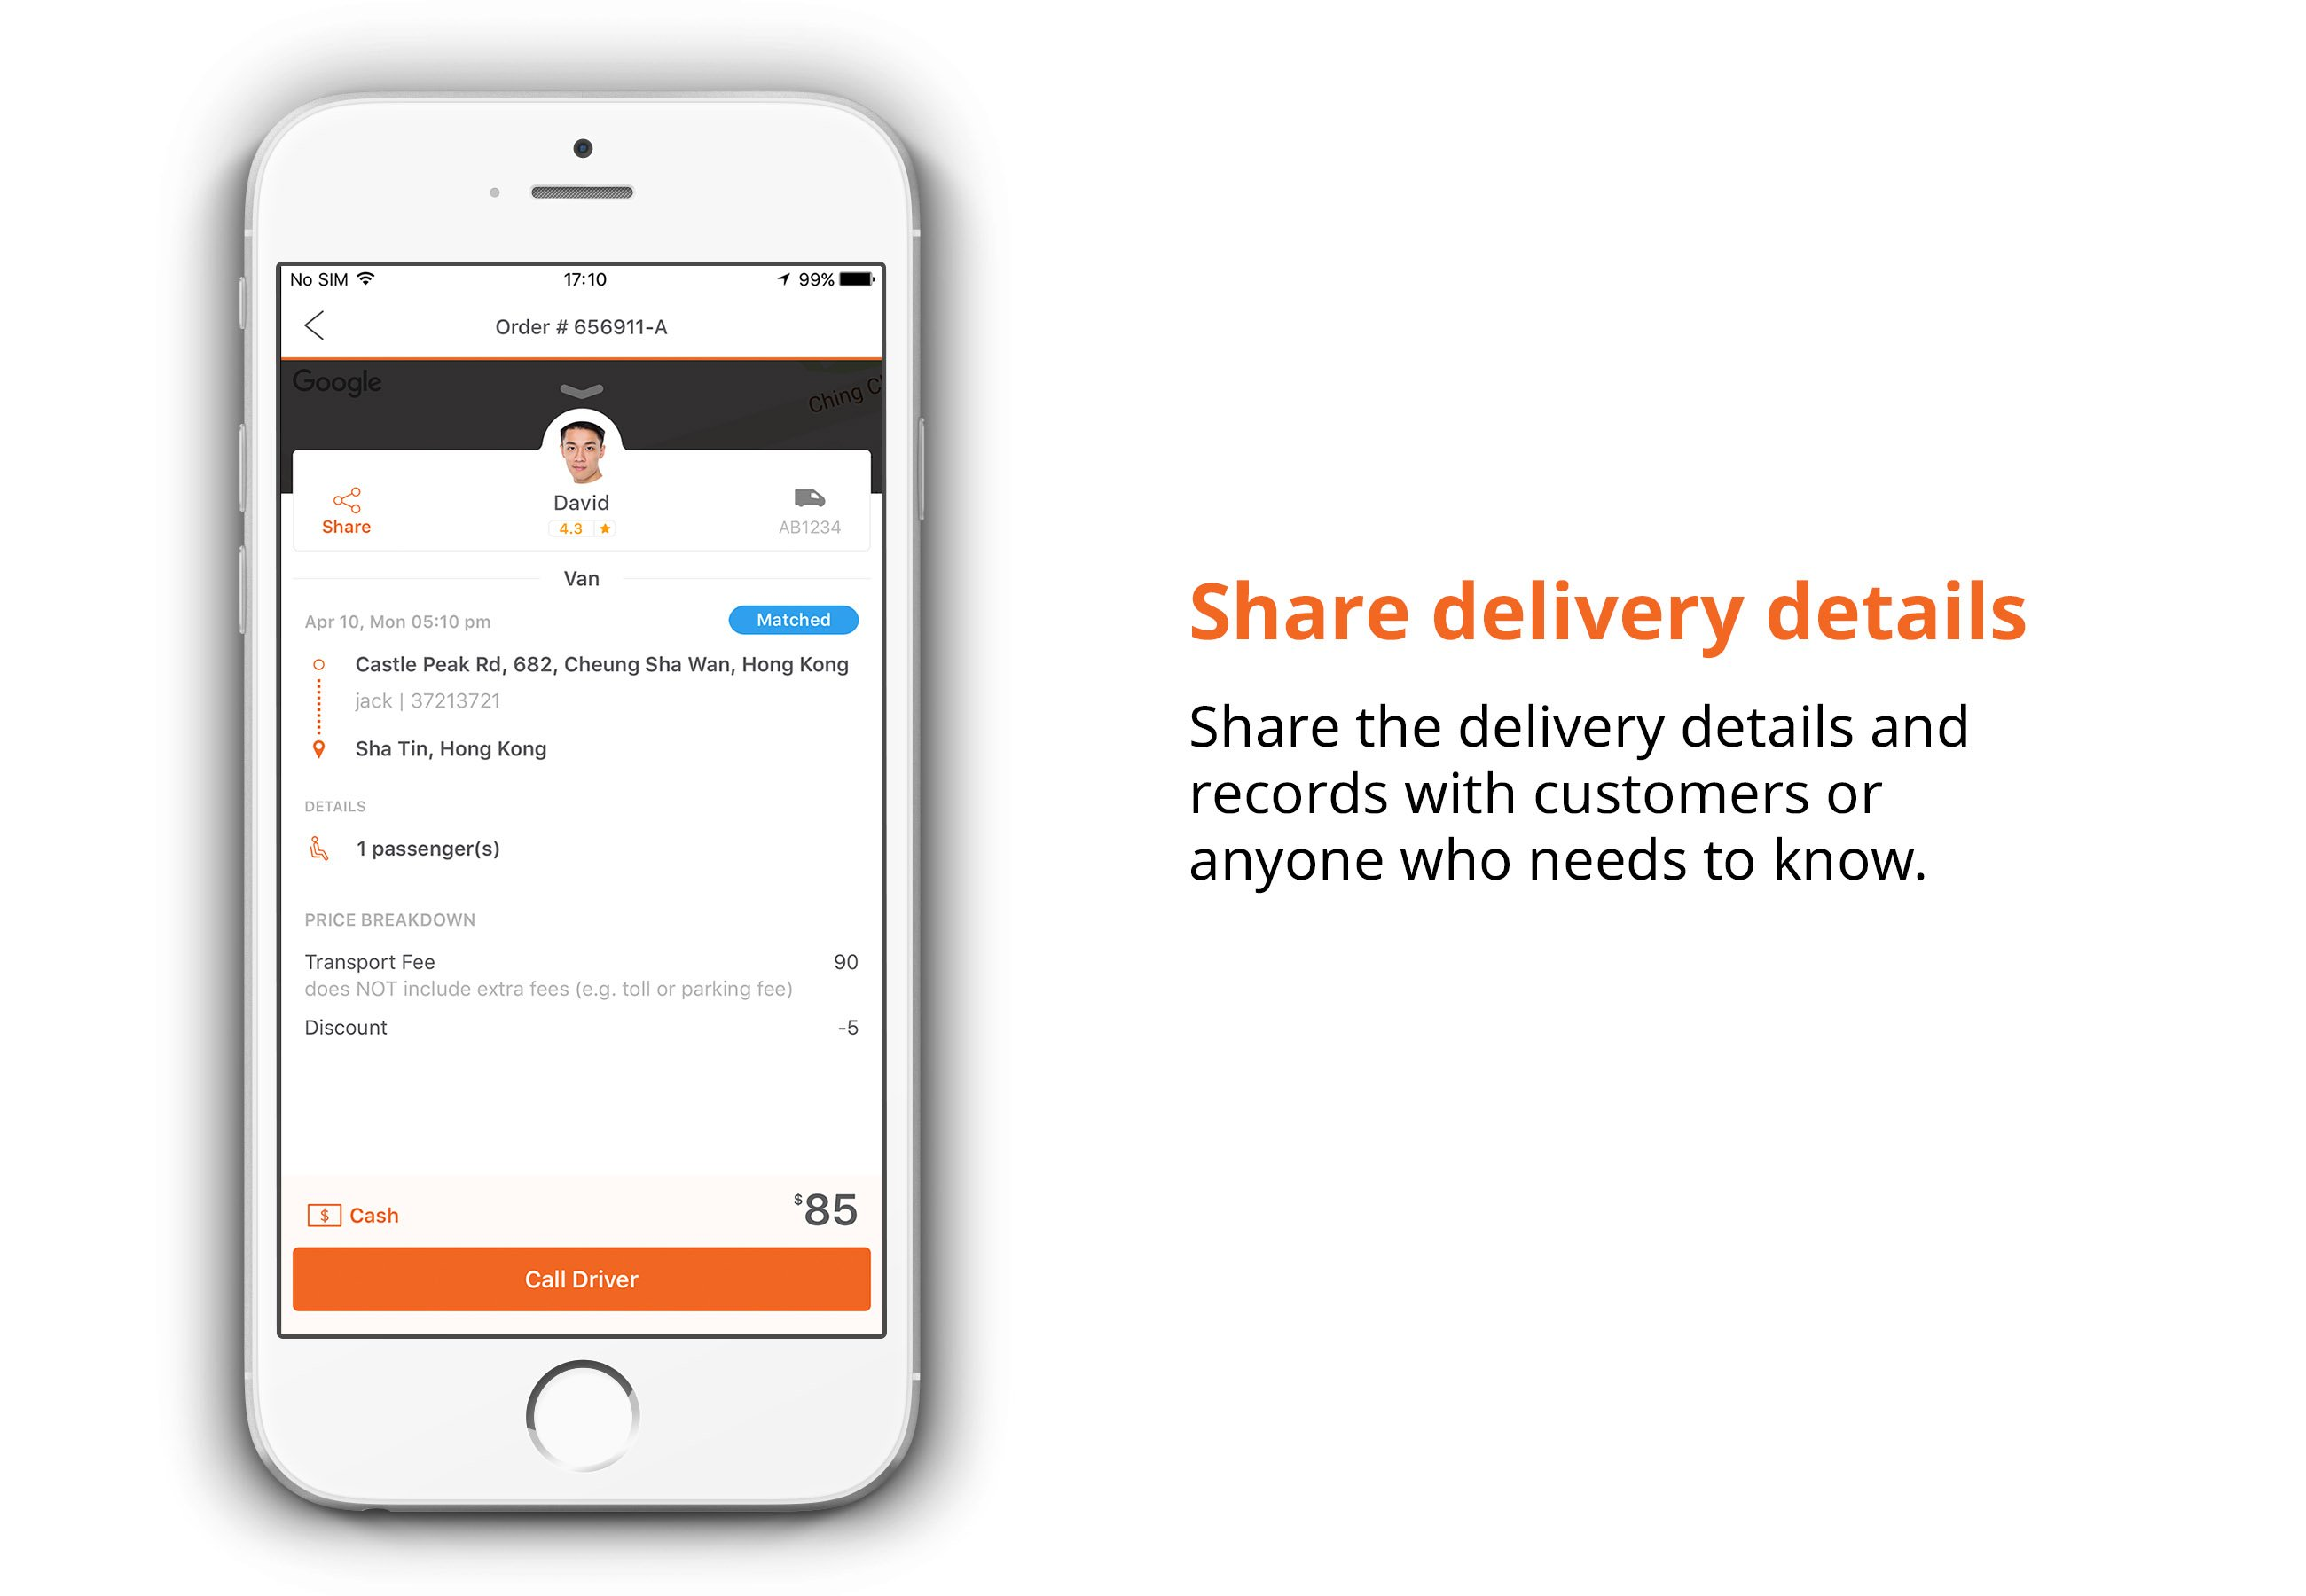 Share delivery details